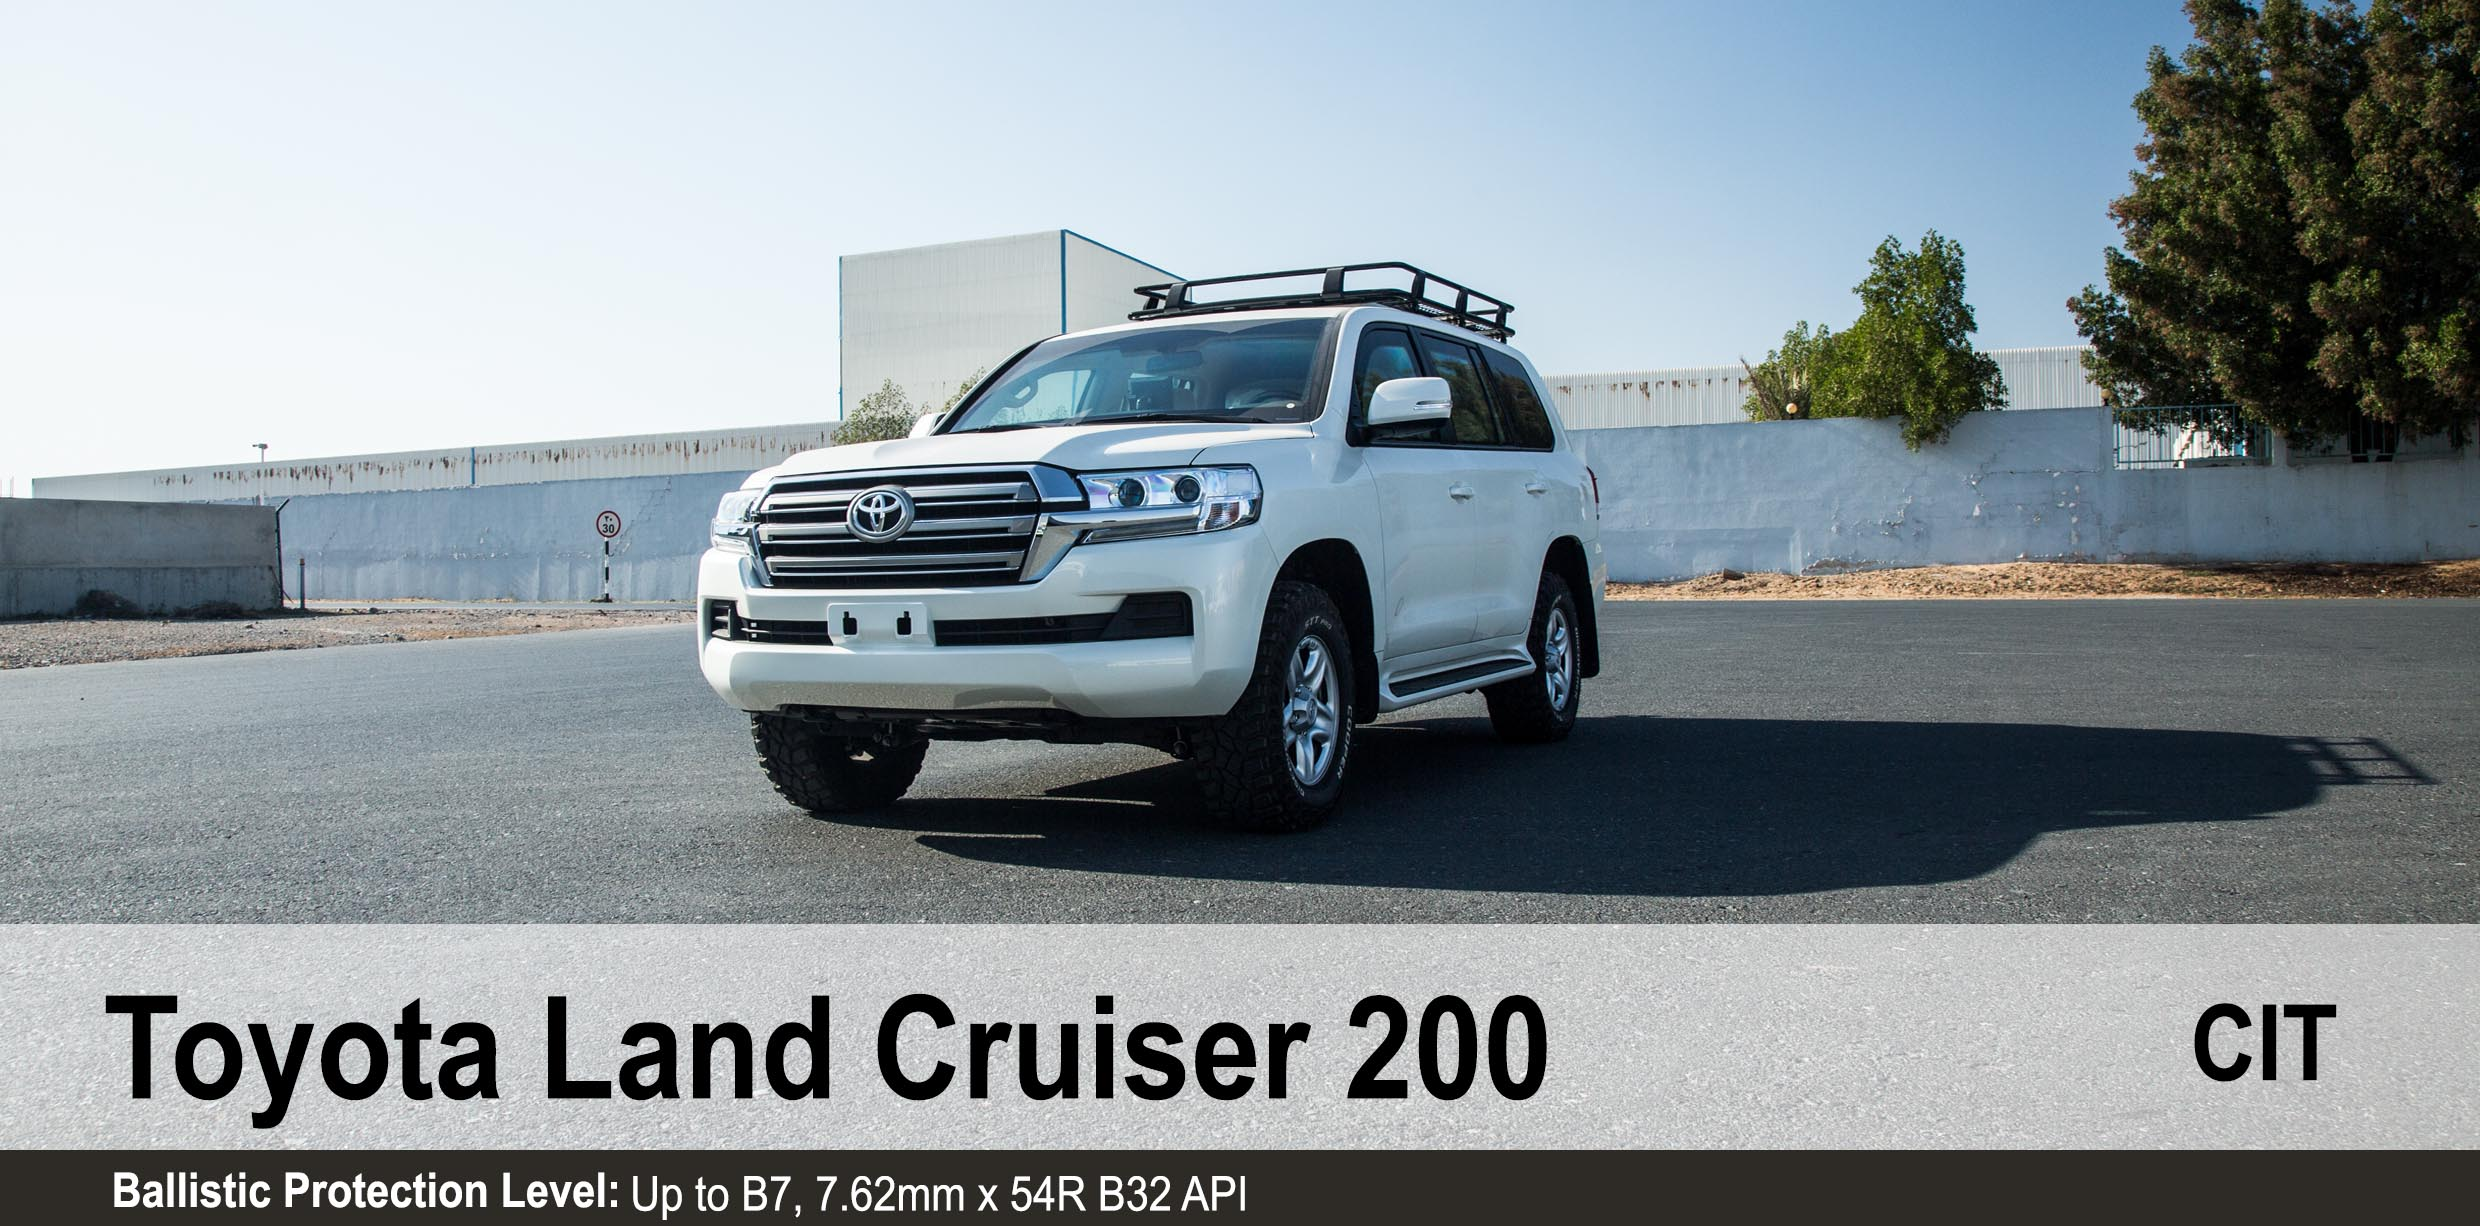 Mahindra Armoured Toyota Land Cruiser 200 Cash in Transit